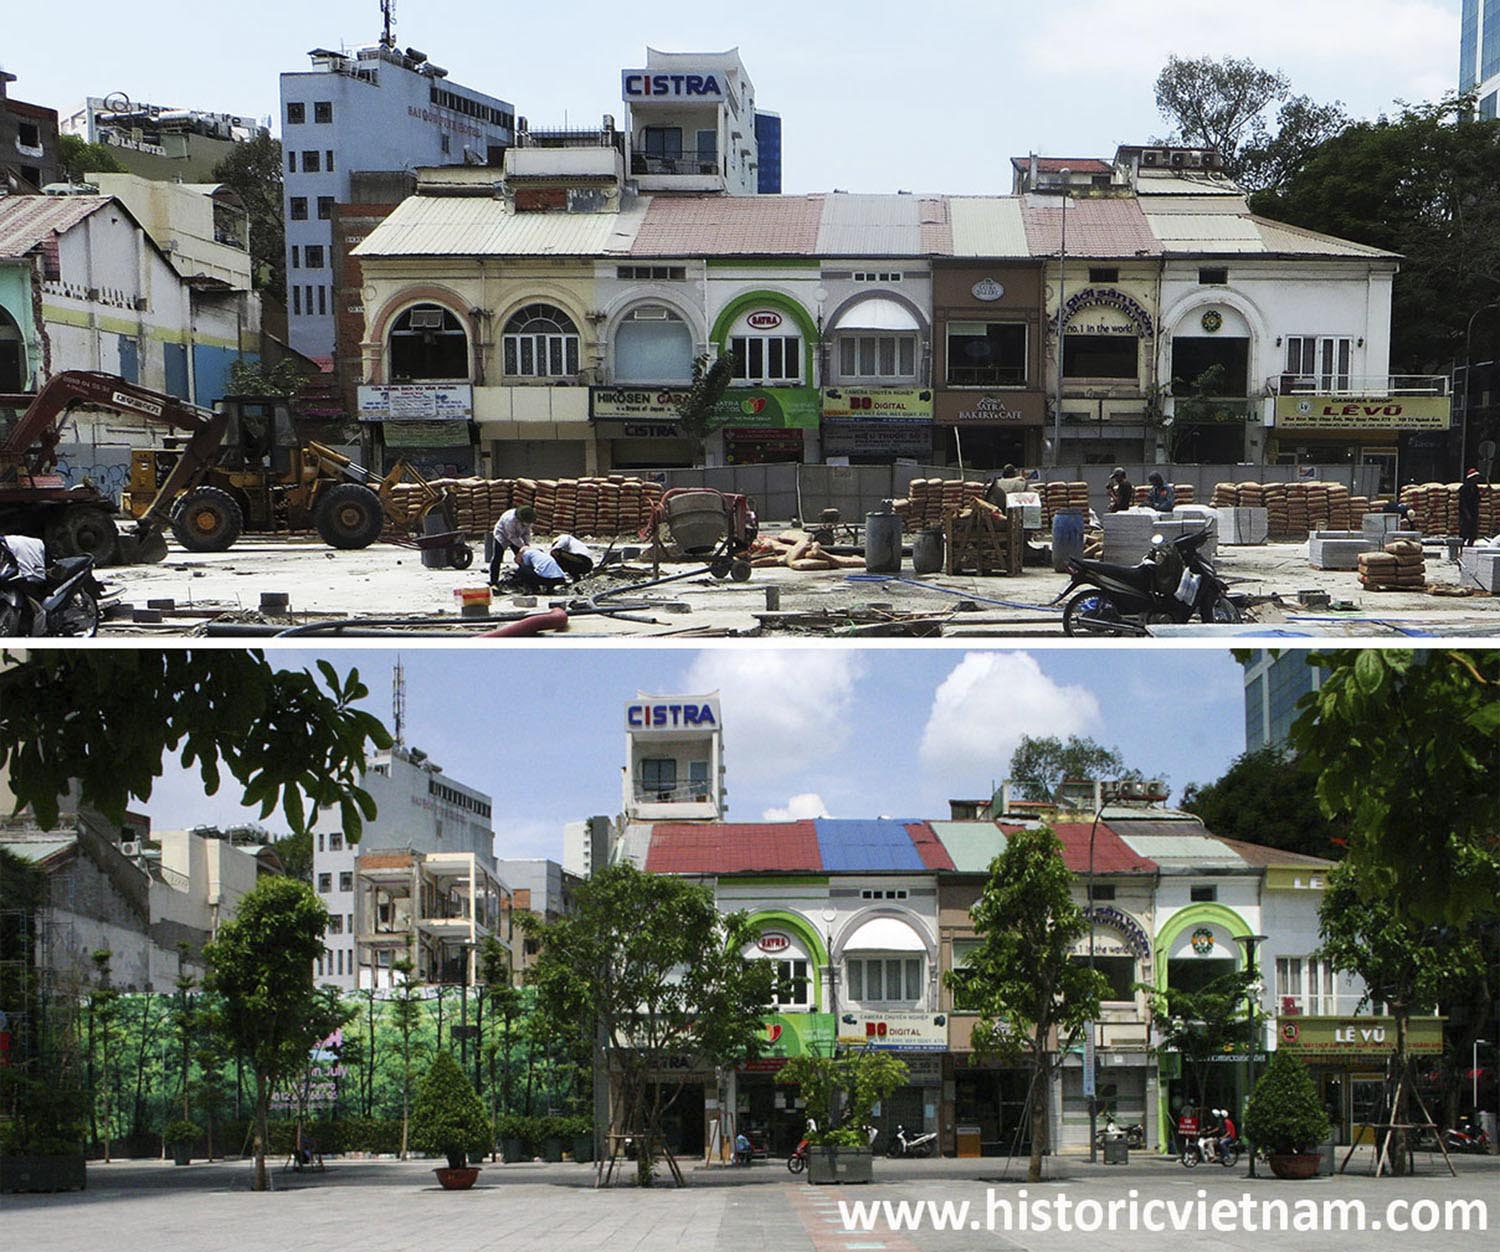 Nos 85-113 Nguyễn Huệ, pictured in March 2015 and in June 2015. To date Nos 89-99 have been demolished.